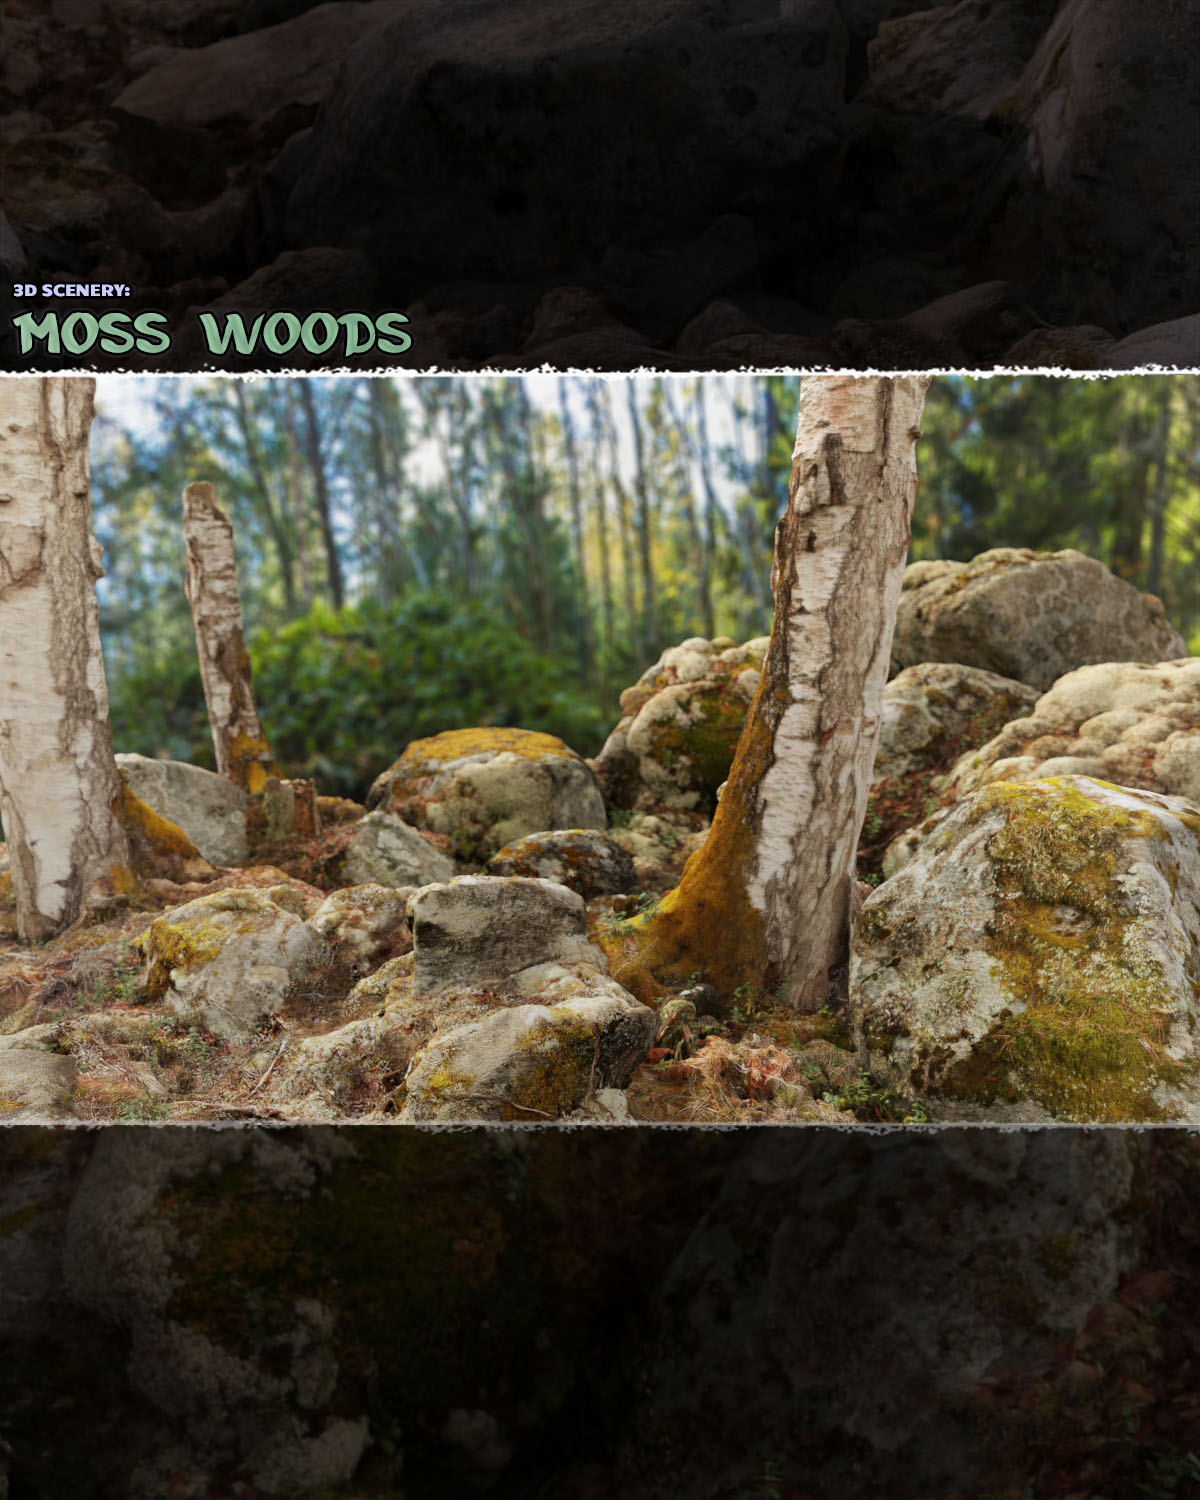 3D Scenery: Moss Woods - Extended License